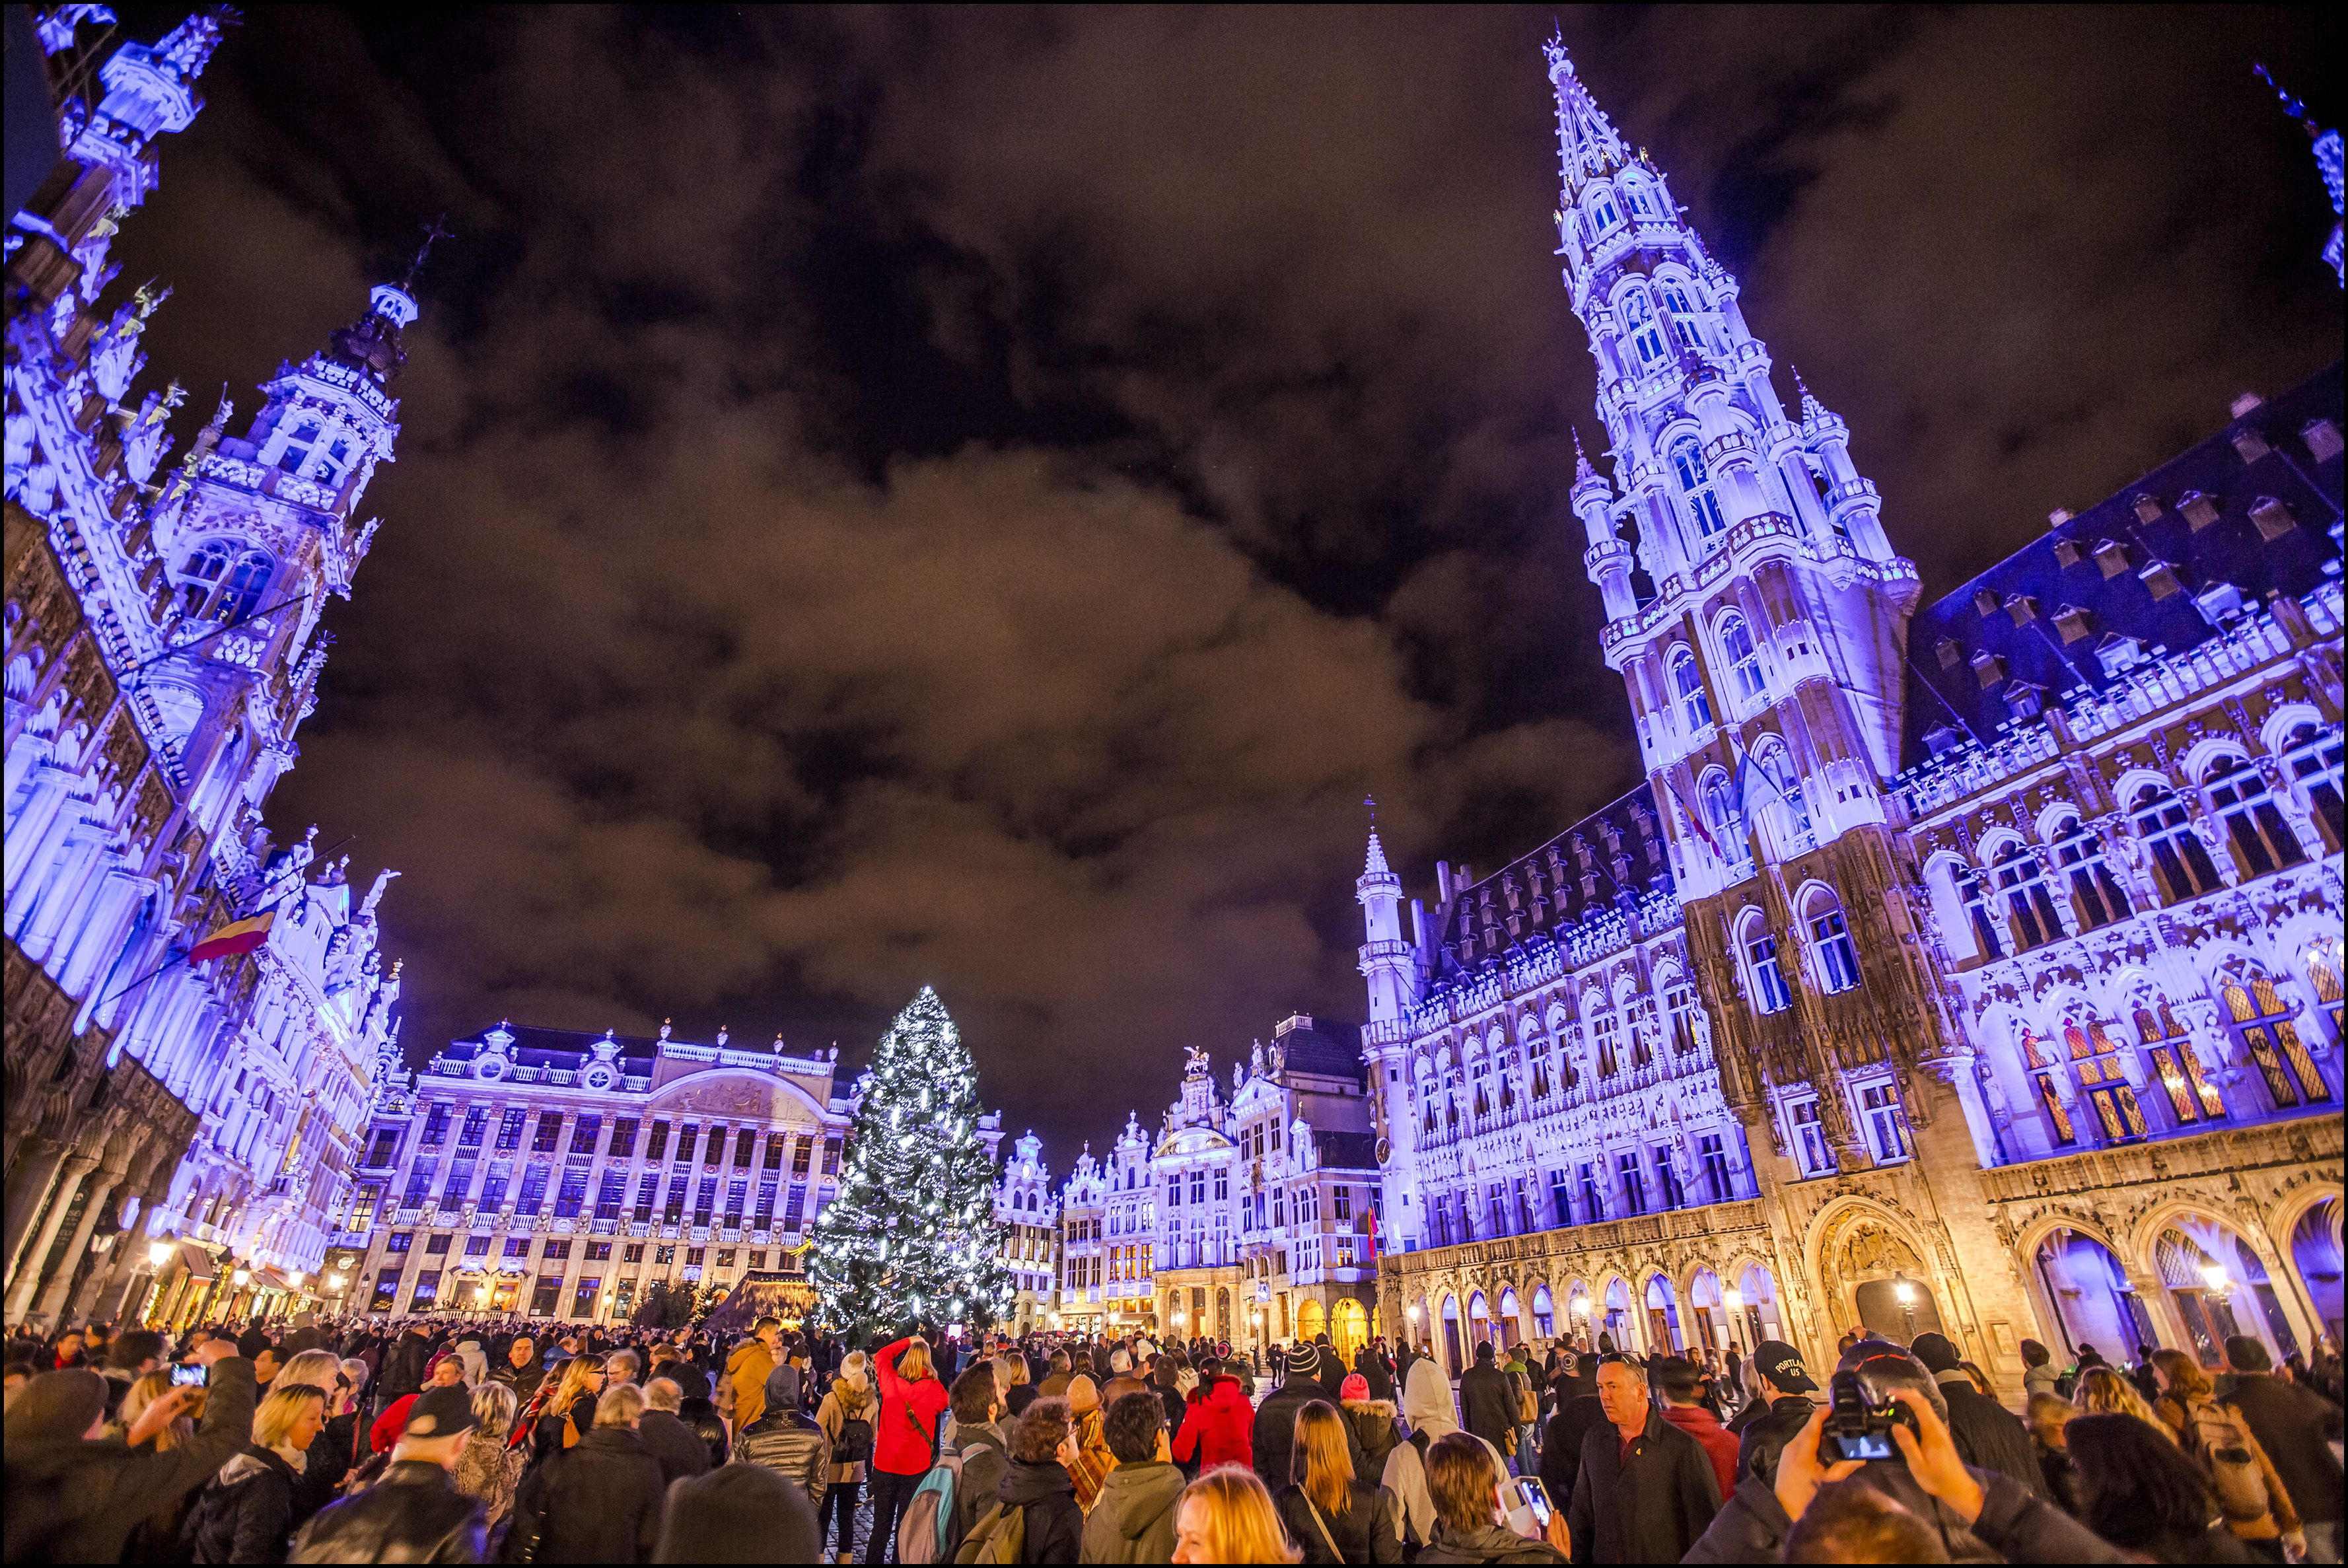 Belgiums Christmas Markets Pack Tons Of Holiday Cheer Into One